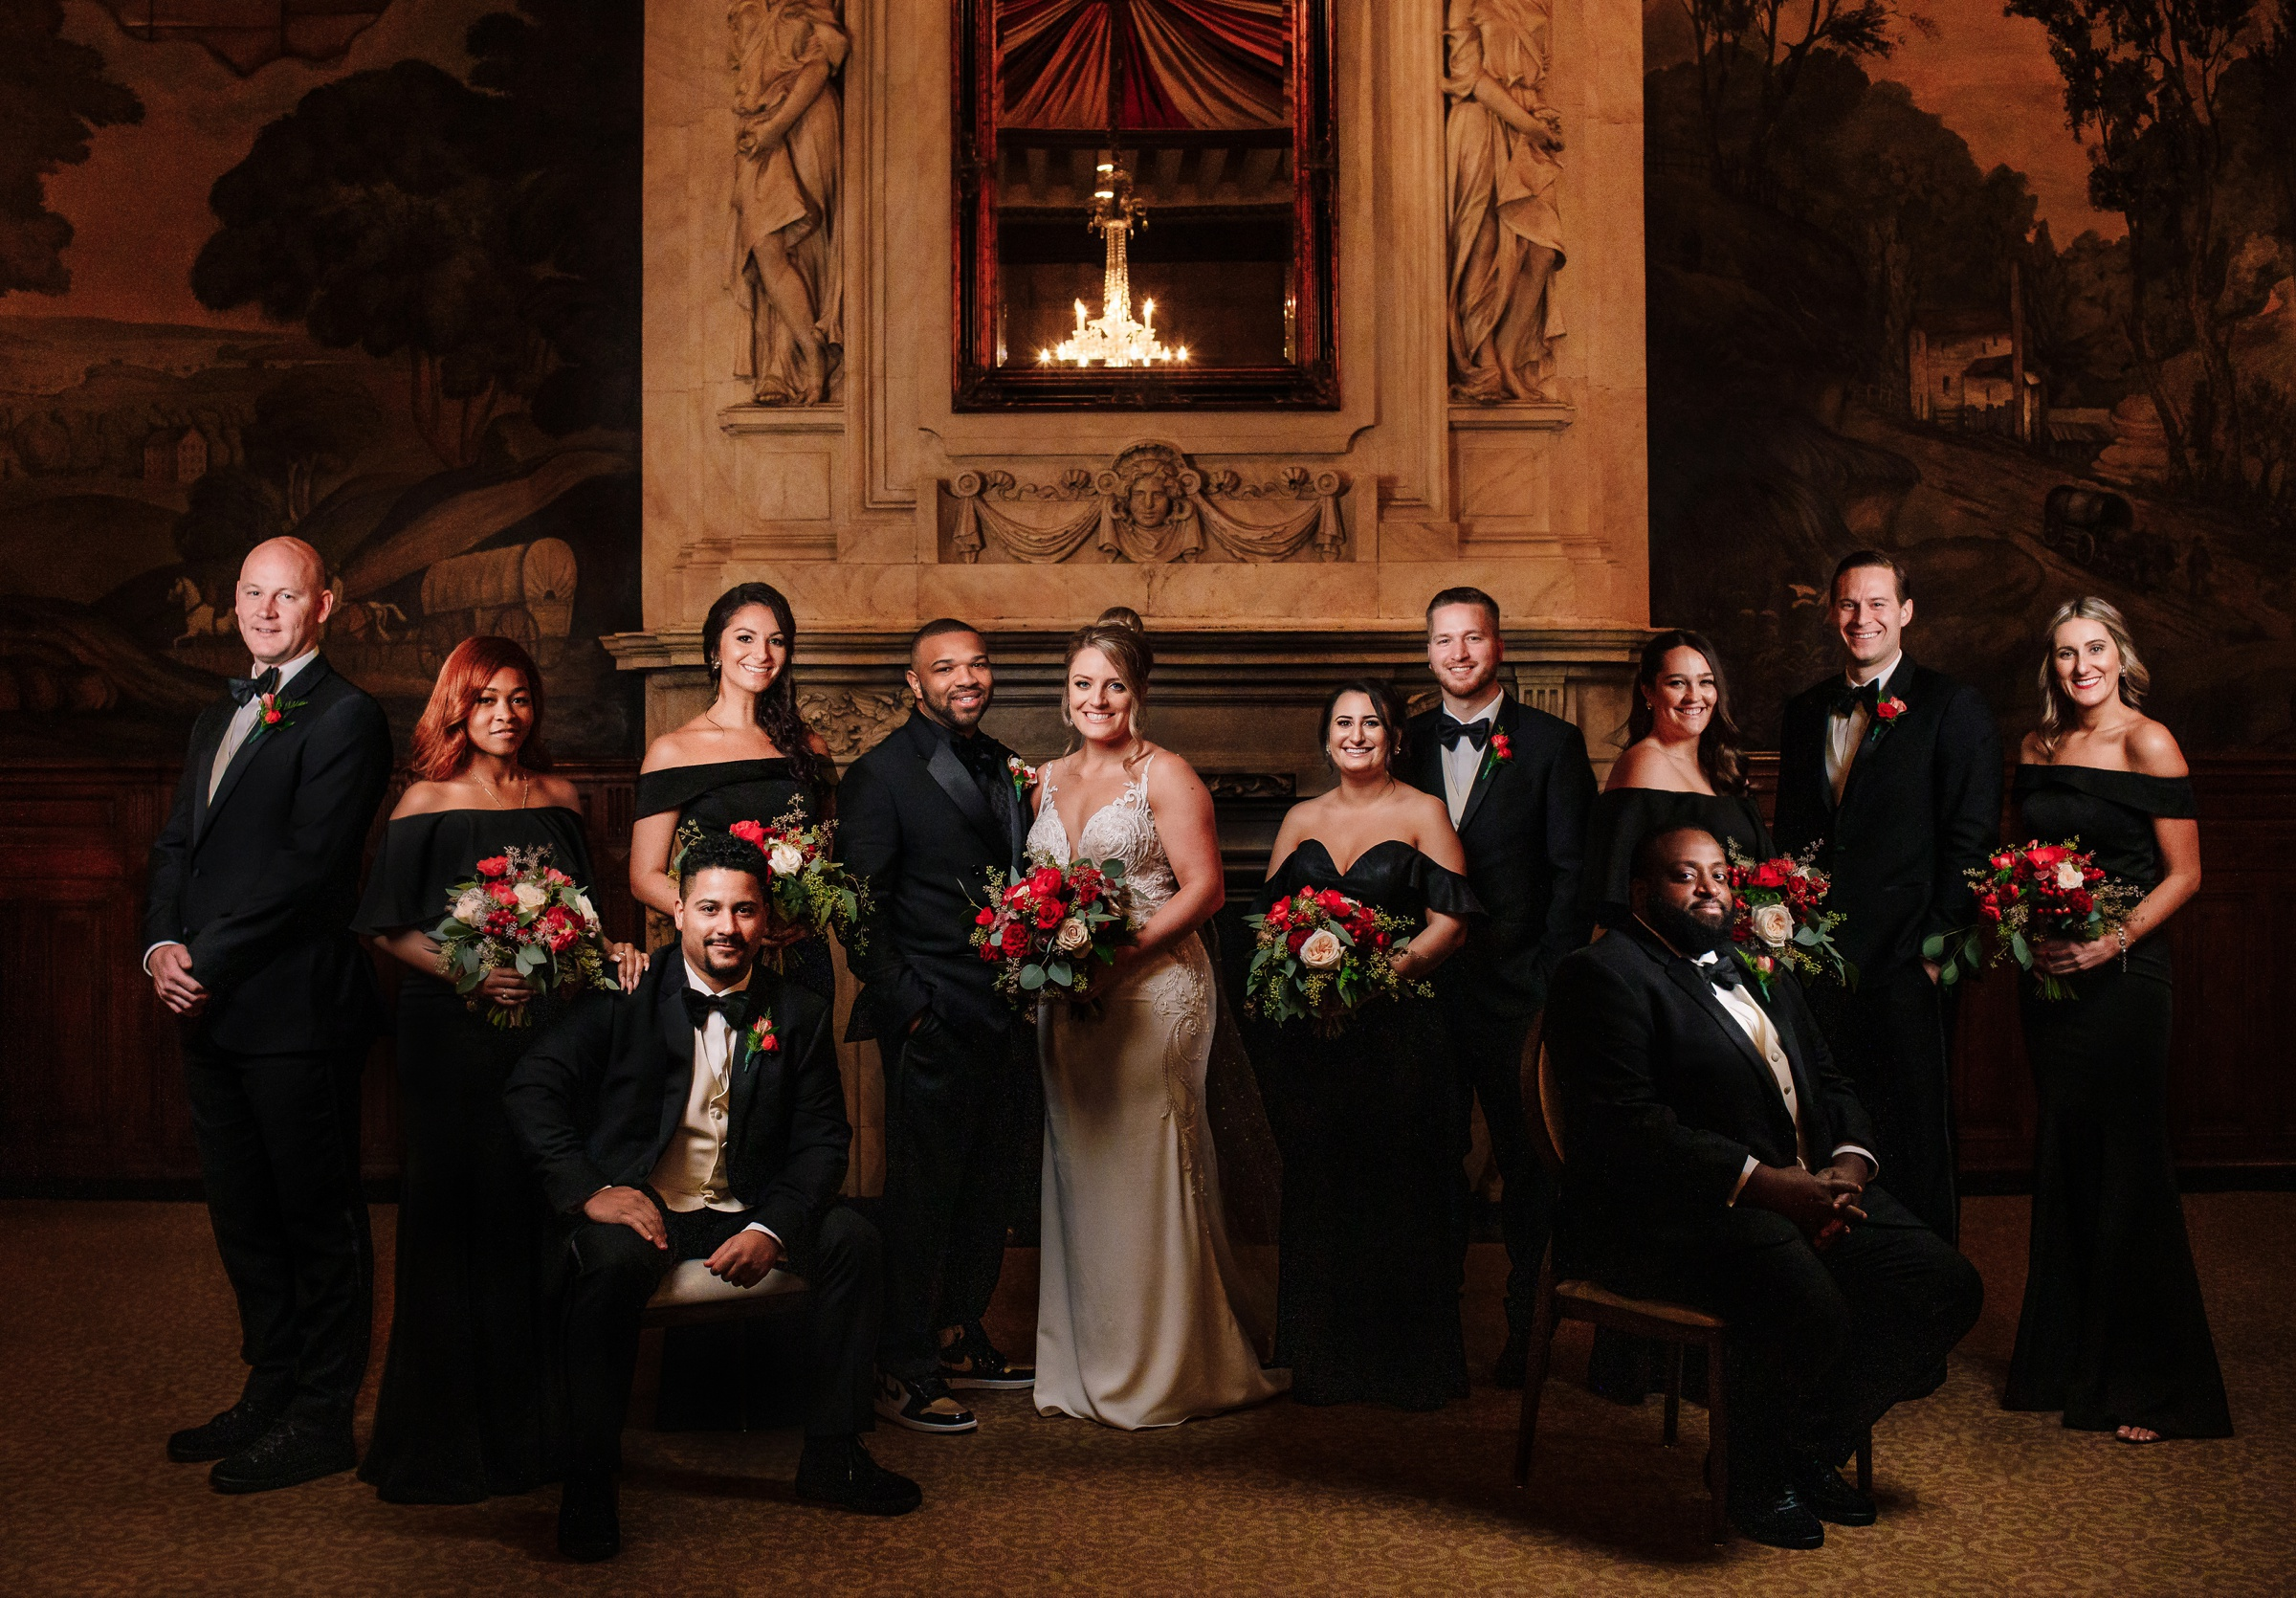 Wedding party in black and red - photo by Photography by Brea